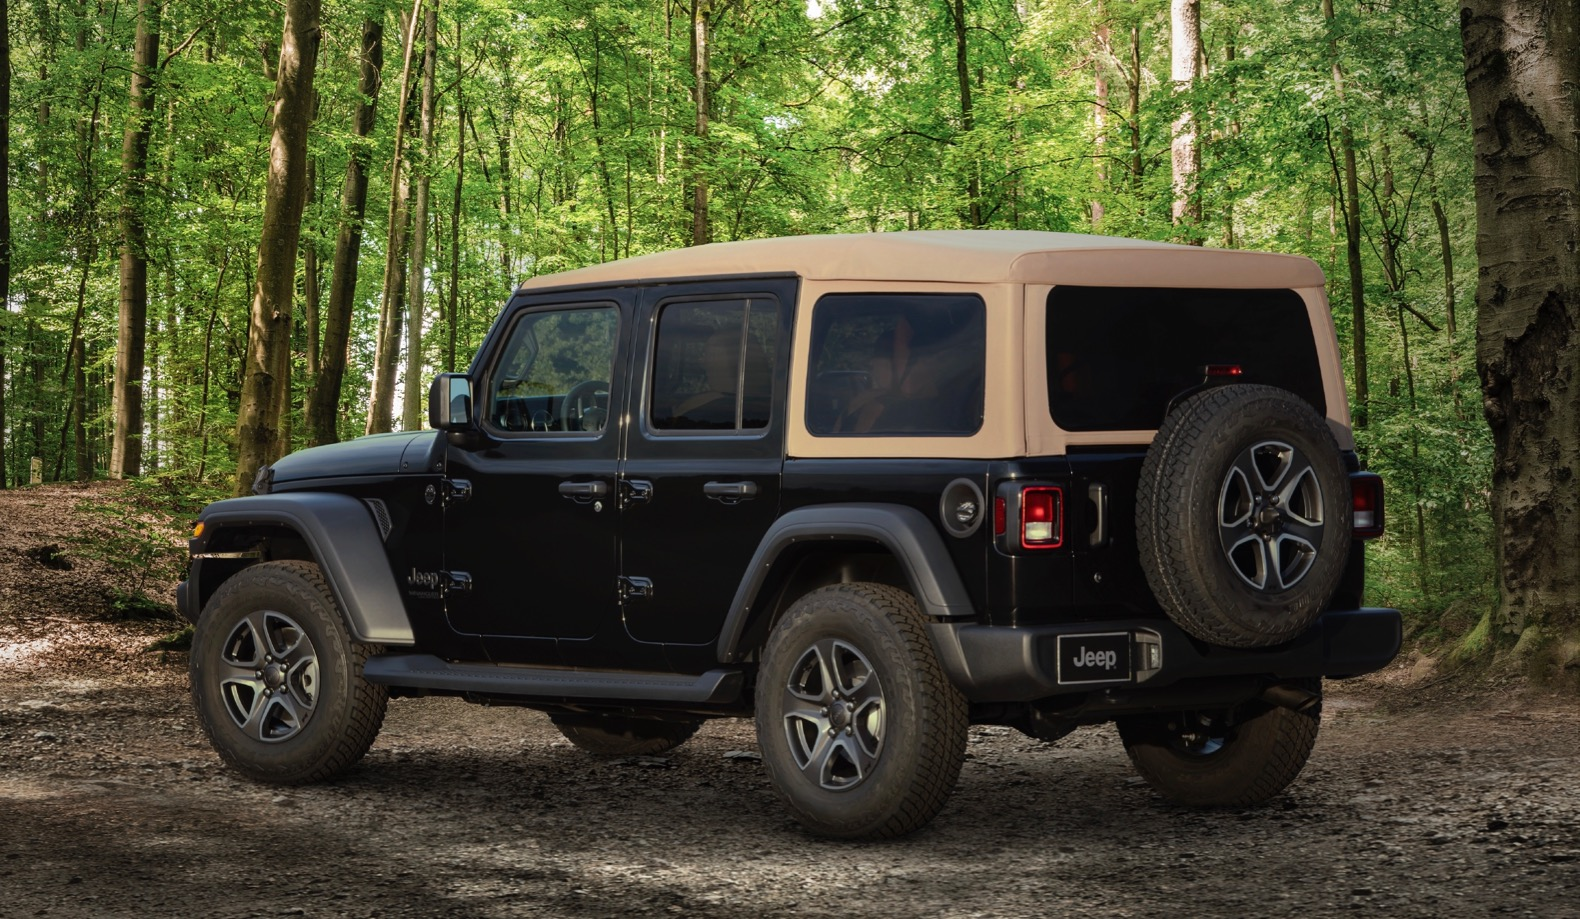 2020 Jeep Wrangler Ecodiesel Pricing Leaked The Torque Report